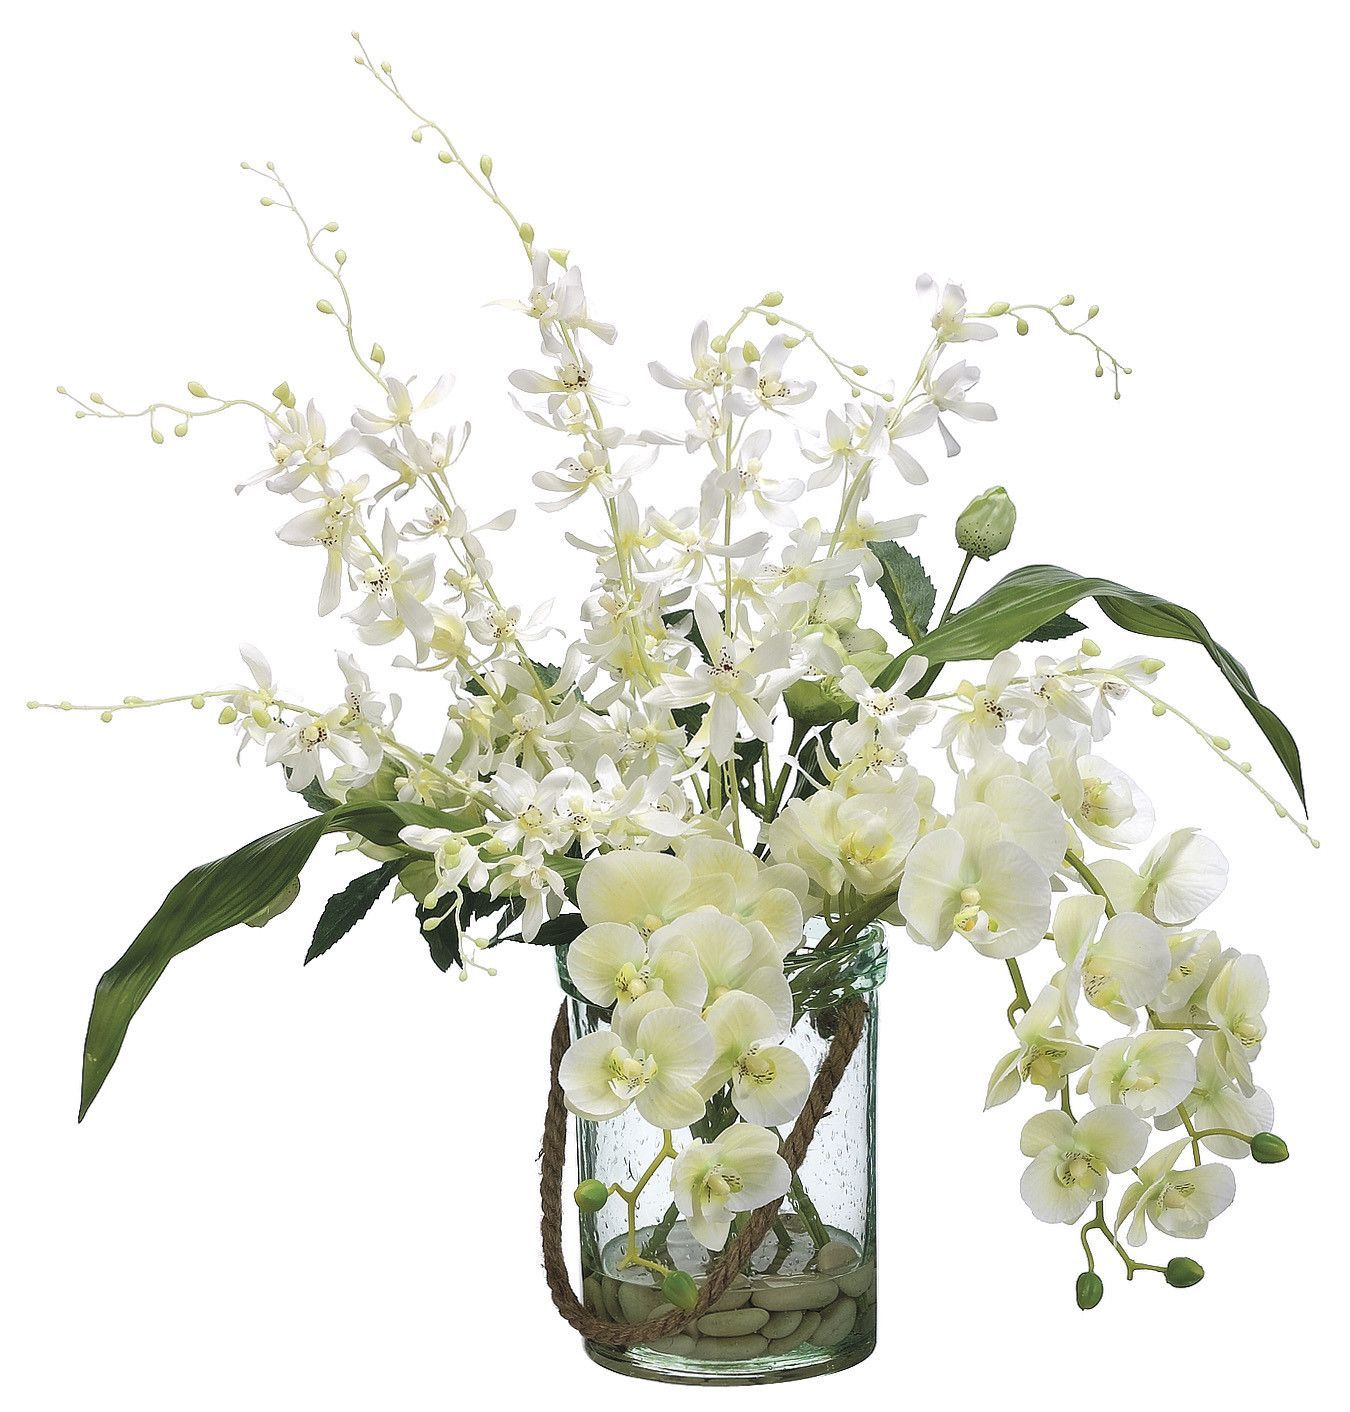 Cream colored phalaenopsis and dendrobium orchids in a decorative